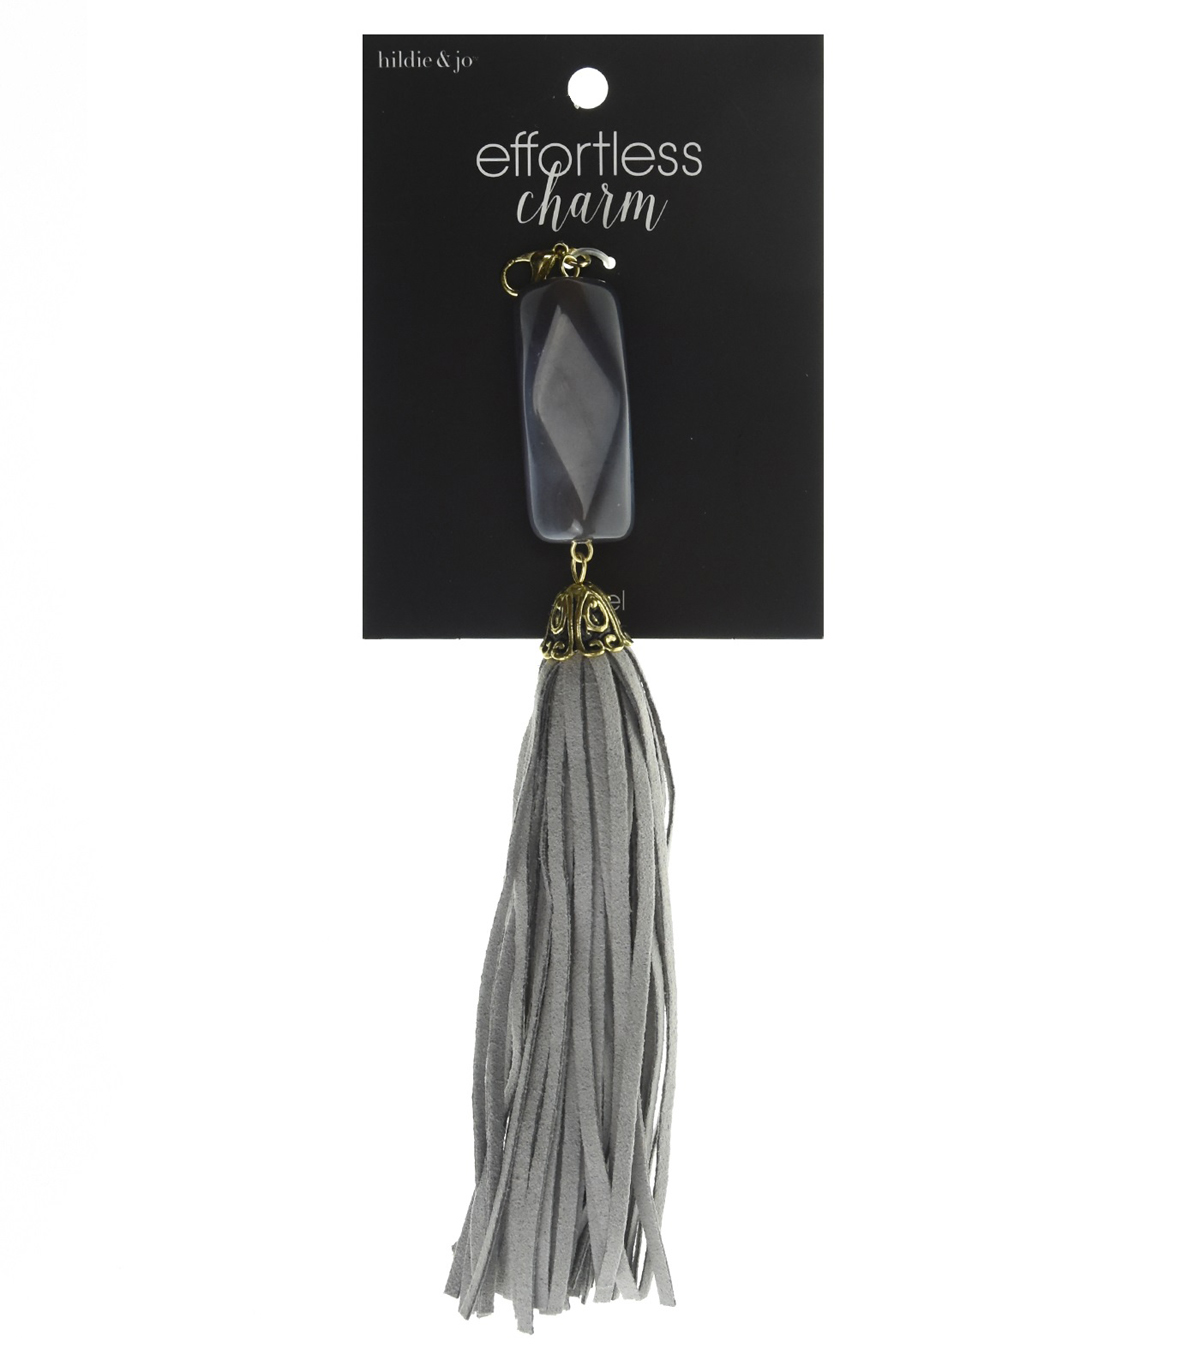 hildie & jo™ Effortless Charm Stone Tassel-Gray